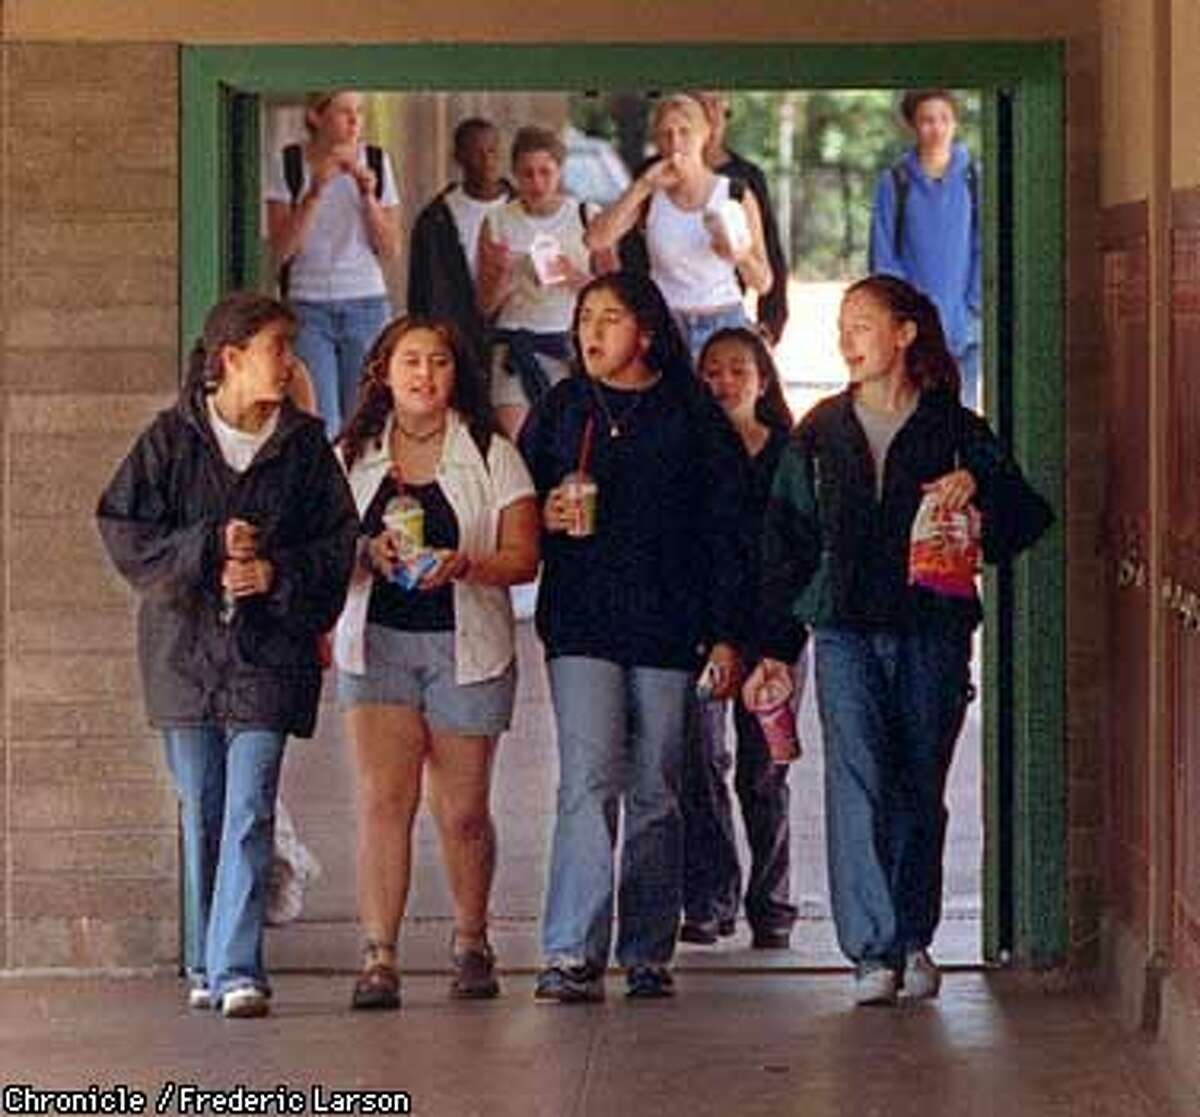 30. Menlo Atherton High School, Menlo Park State rank: 74 Average student SAT score: 1300